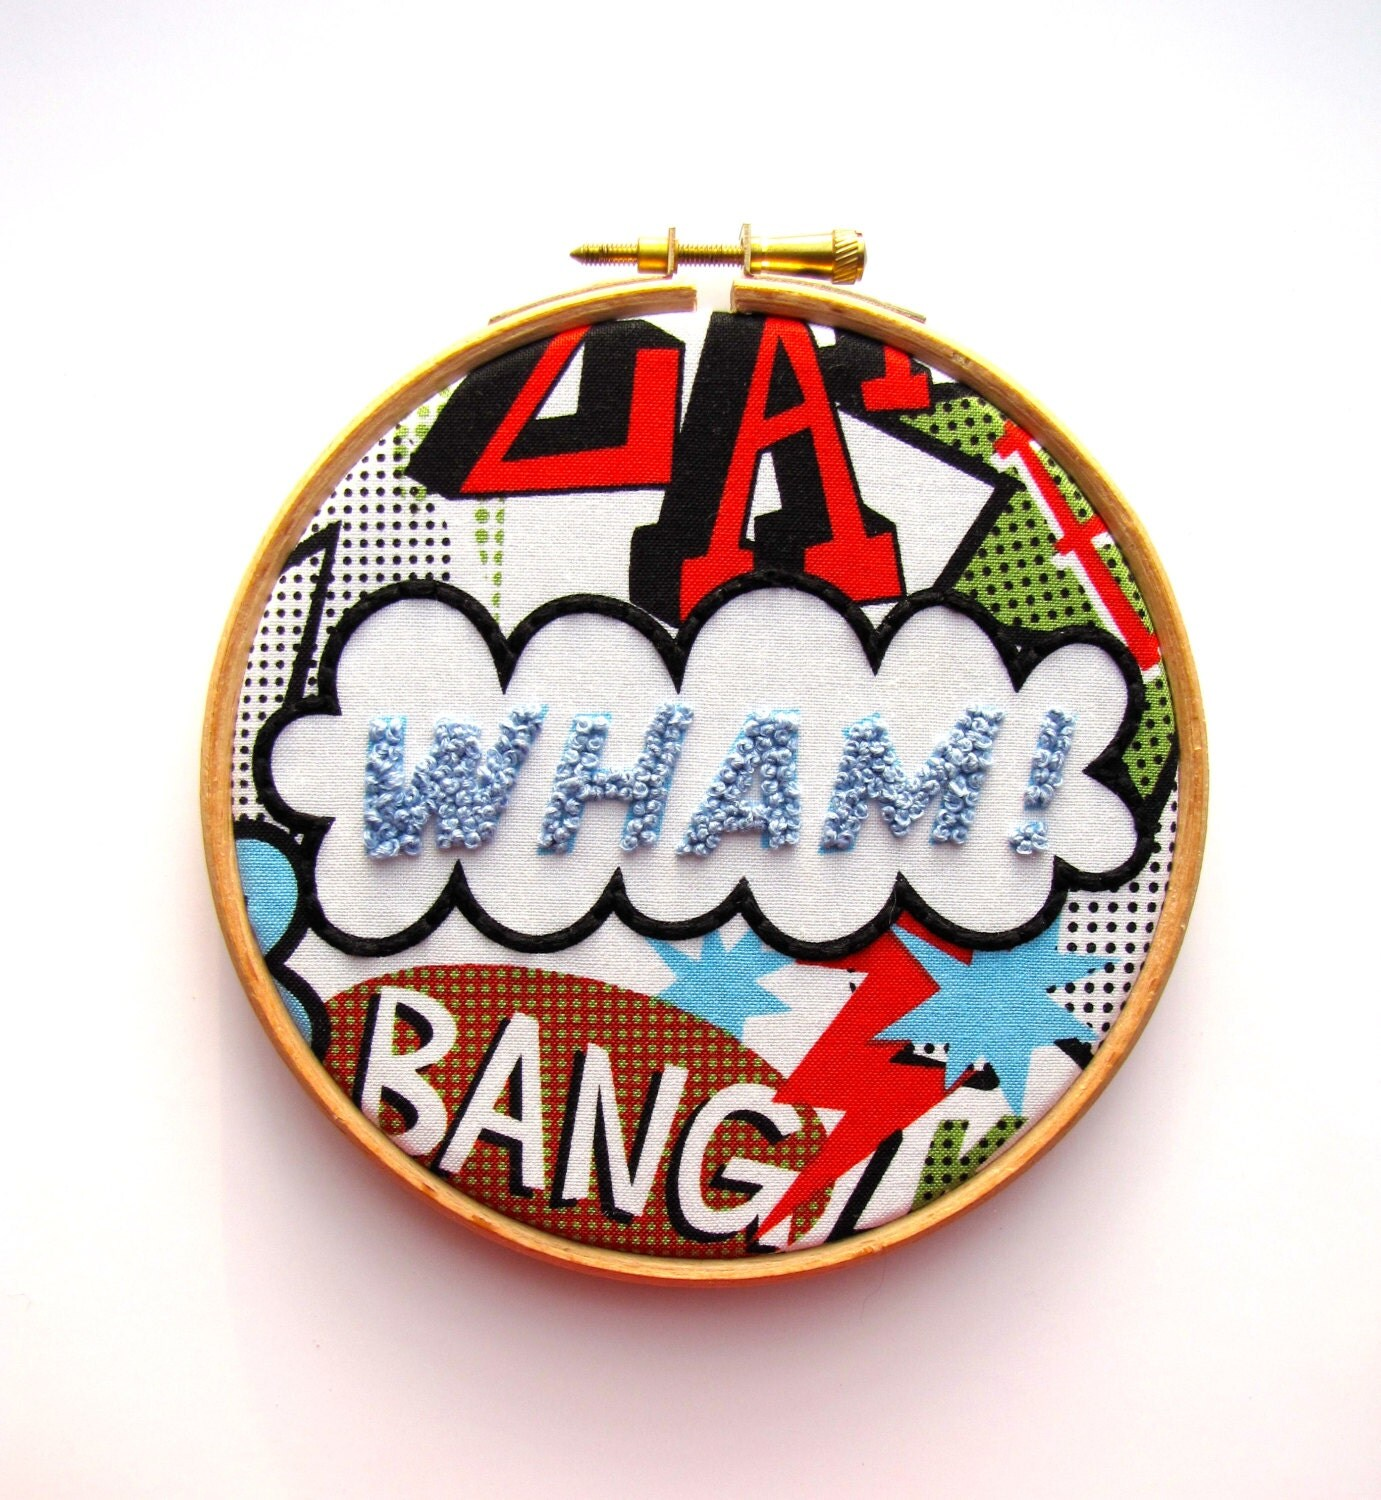 WHAM - Hand Embroidery Hoop Art - Bright Bold Colours - Comic Book - Superhero - 5x5 inch Hoop by mirrymirry - mirrymirry